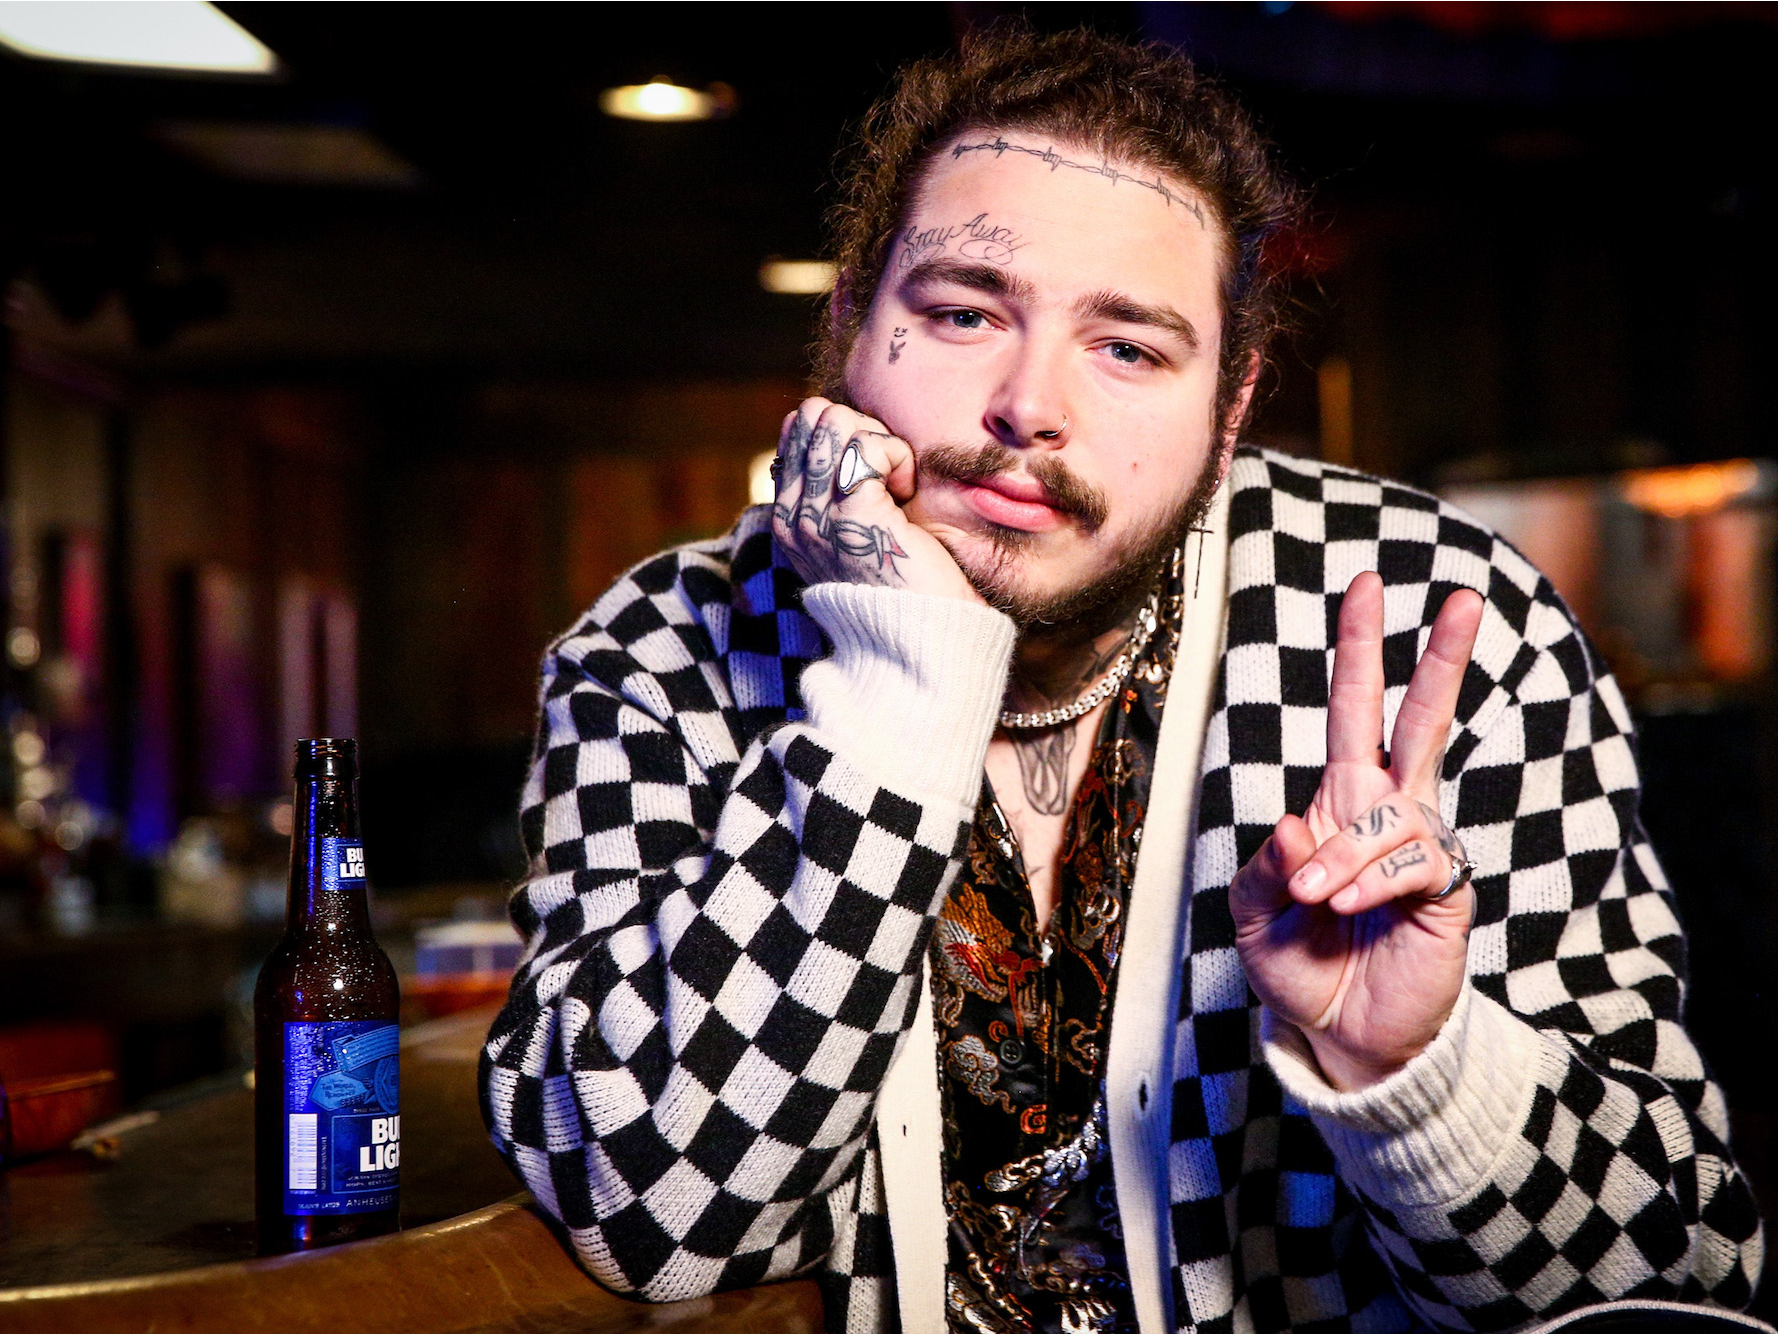 Postmates reveals that Post Malone is its '#1 most dedicated